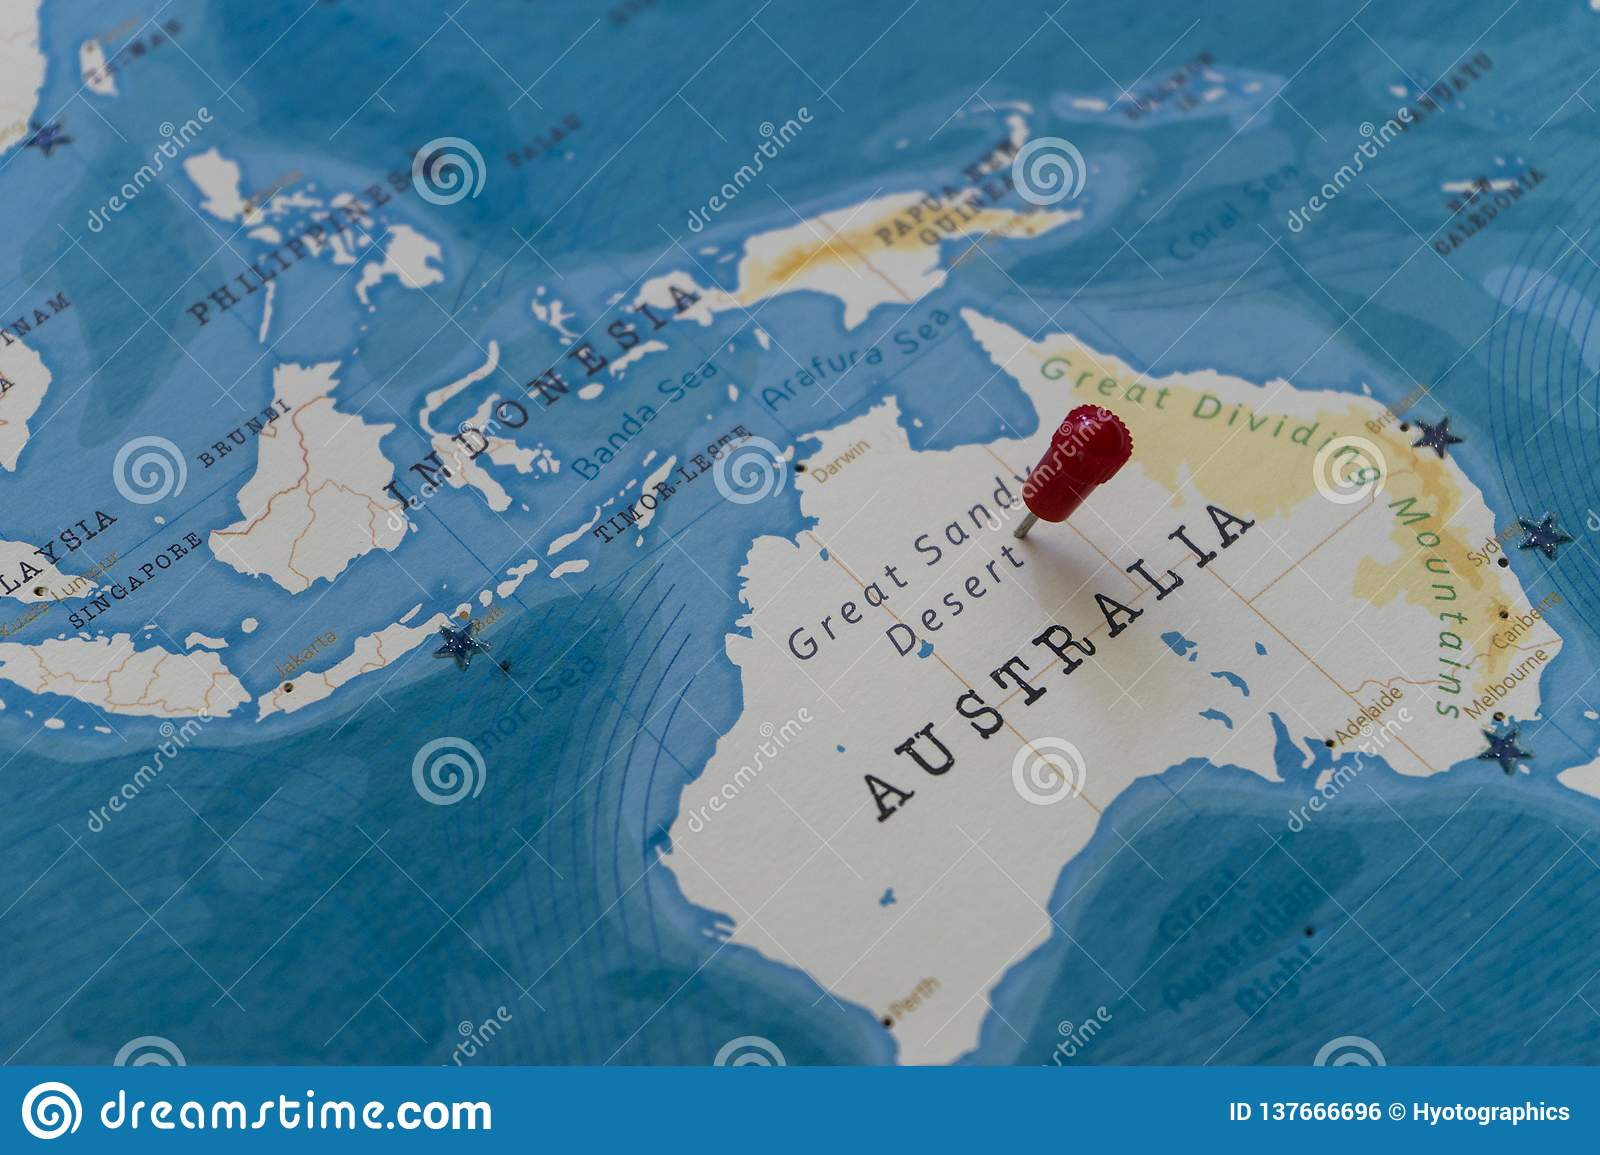 Australia Map Desert.A Pin On Great Sandy Desert Australia In The World Map Stock Photo